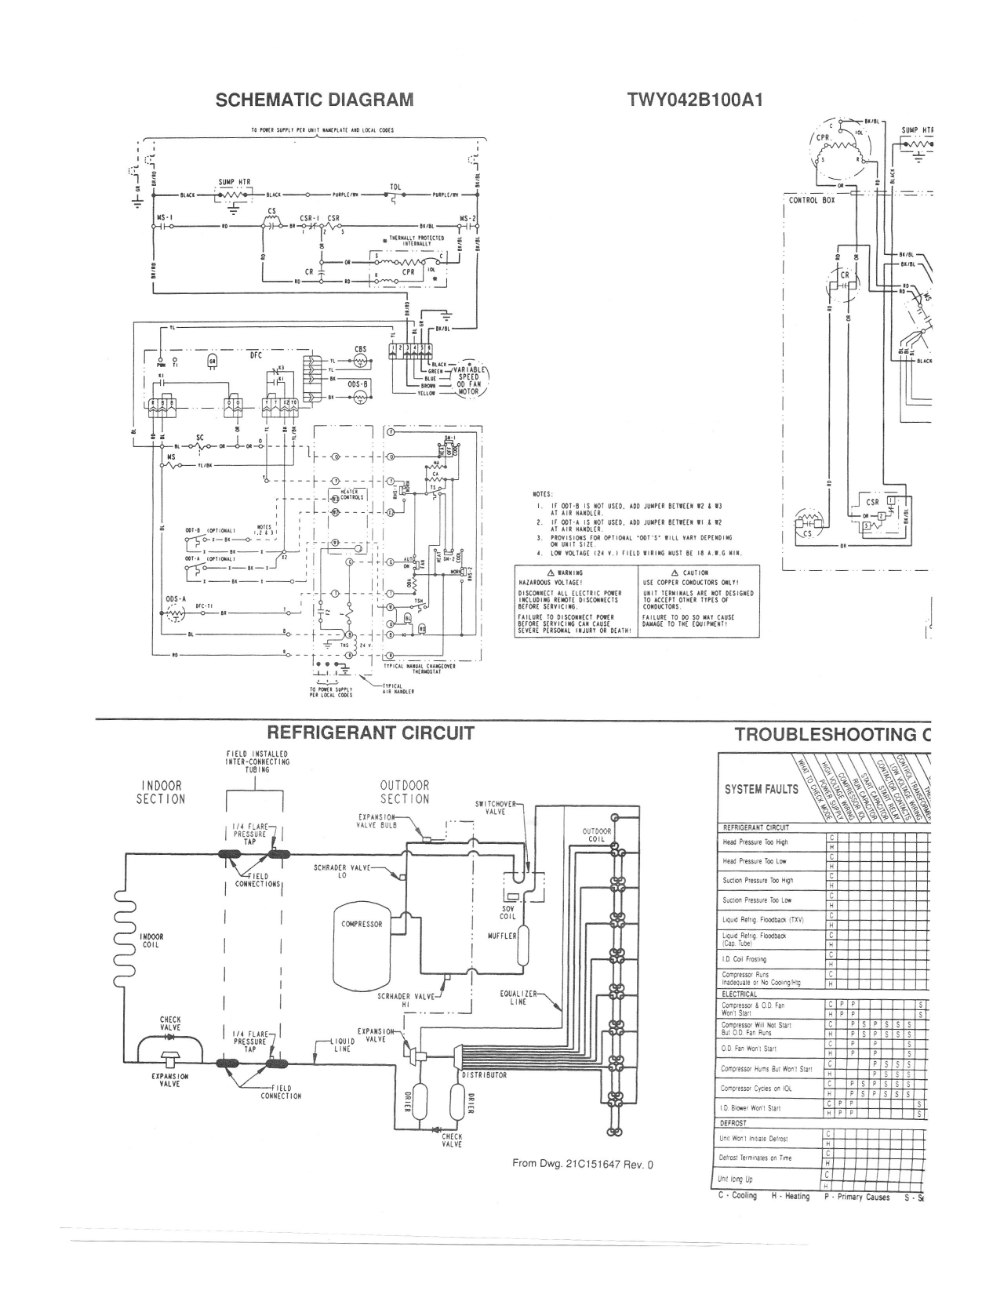 Trane Xe 1200 Wiring Diagram | Wiring Diagram | Trane, Trane hvac, DiagramPinterest